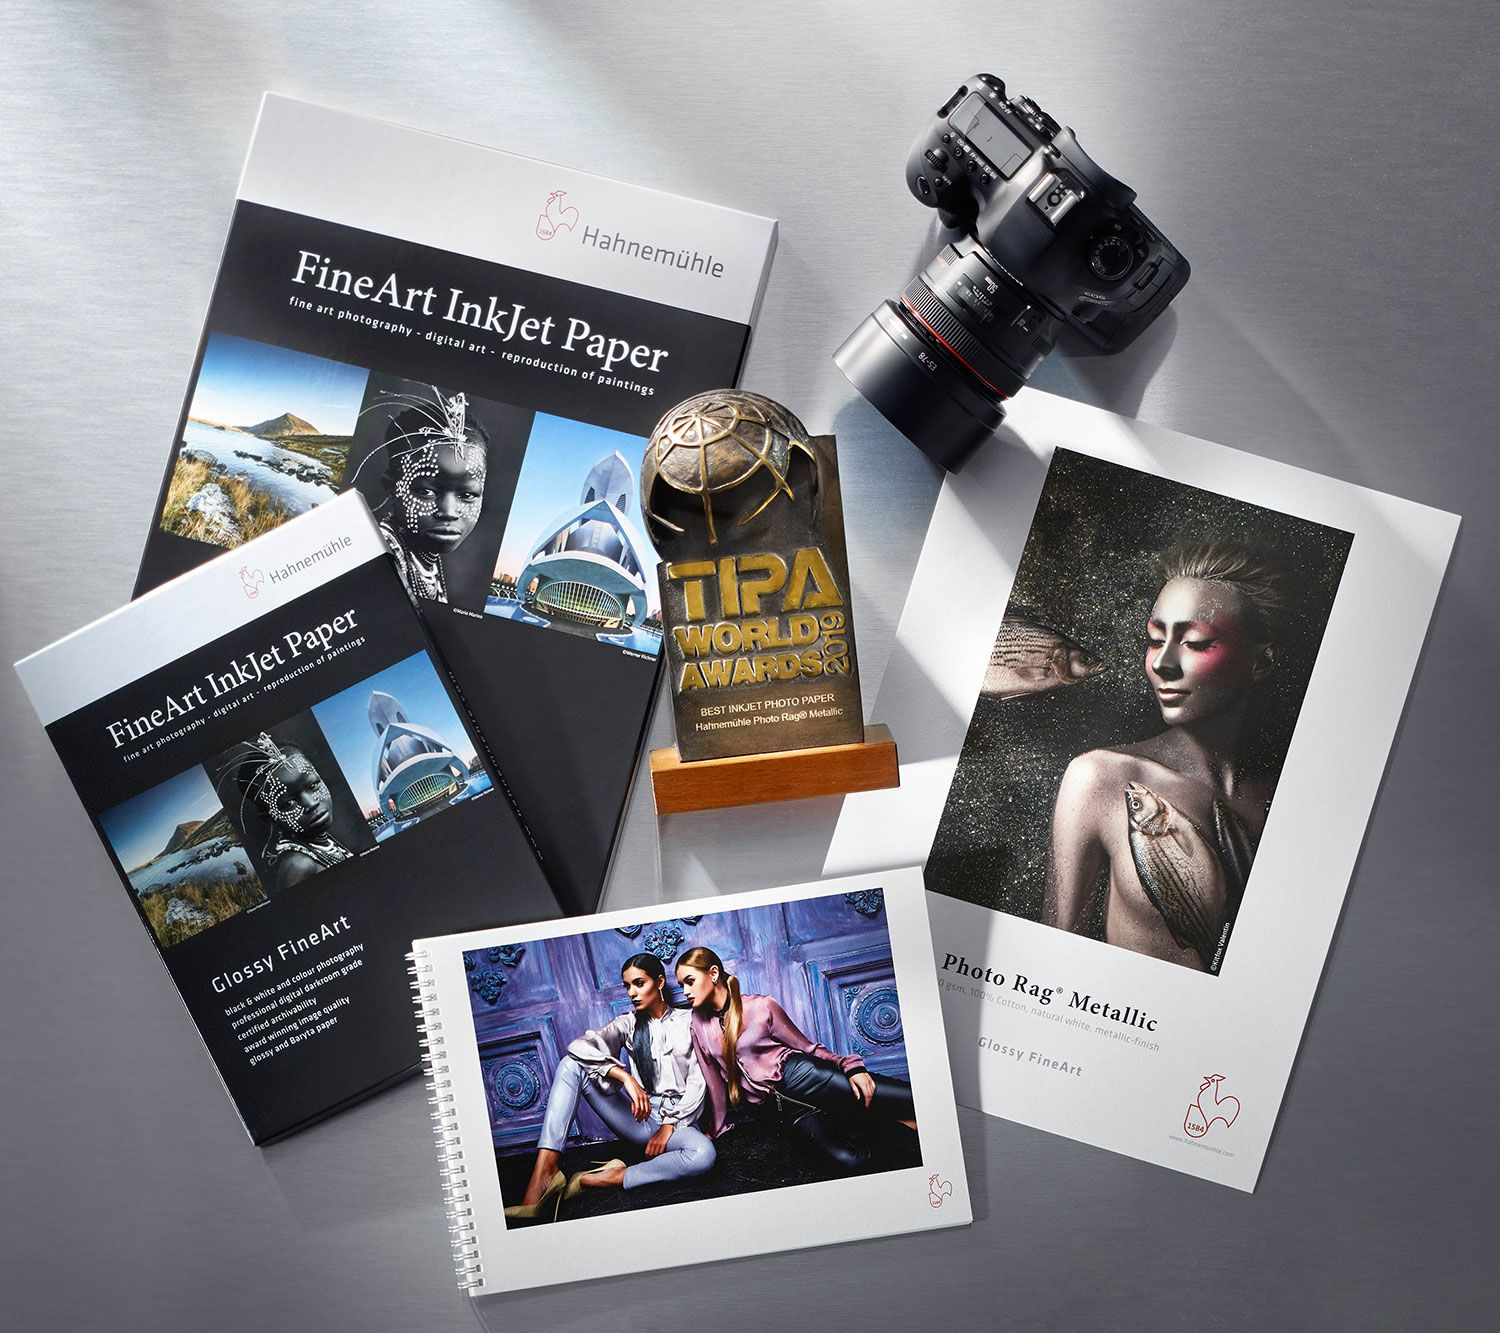 Photo Rag® Metallic winner of the TIPA Award 2019